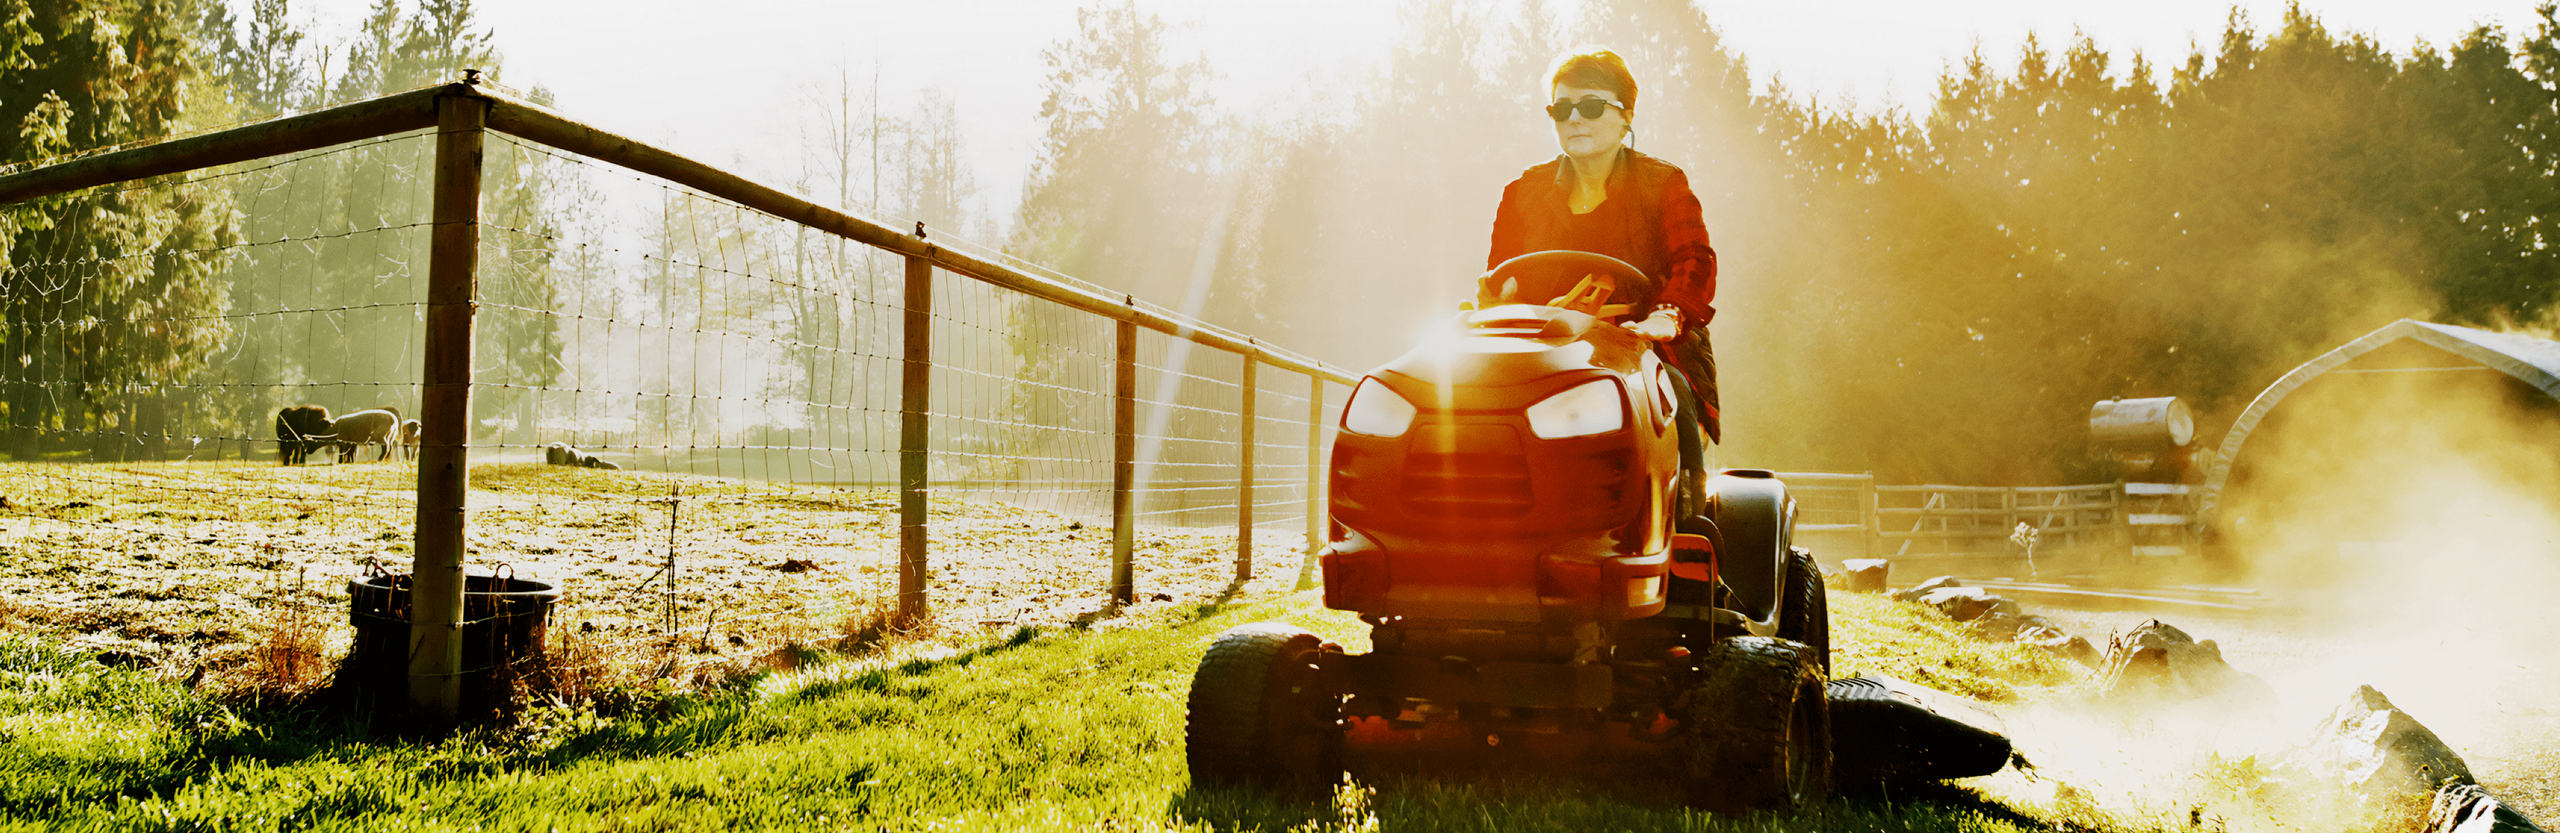 Picture of woman driving a lawnmower in farm setting